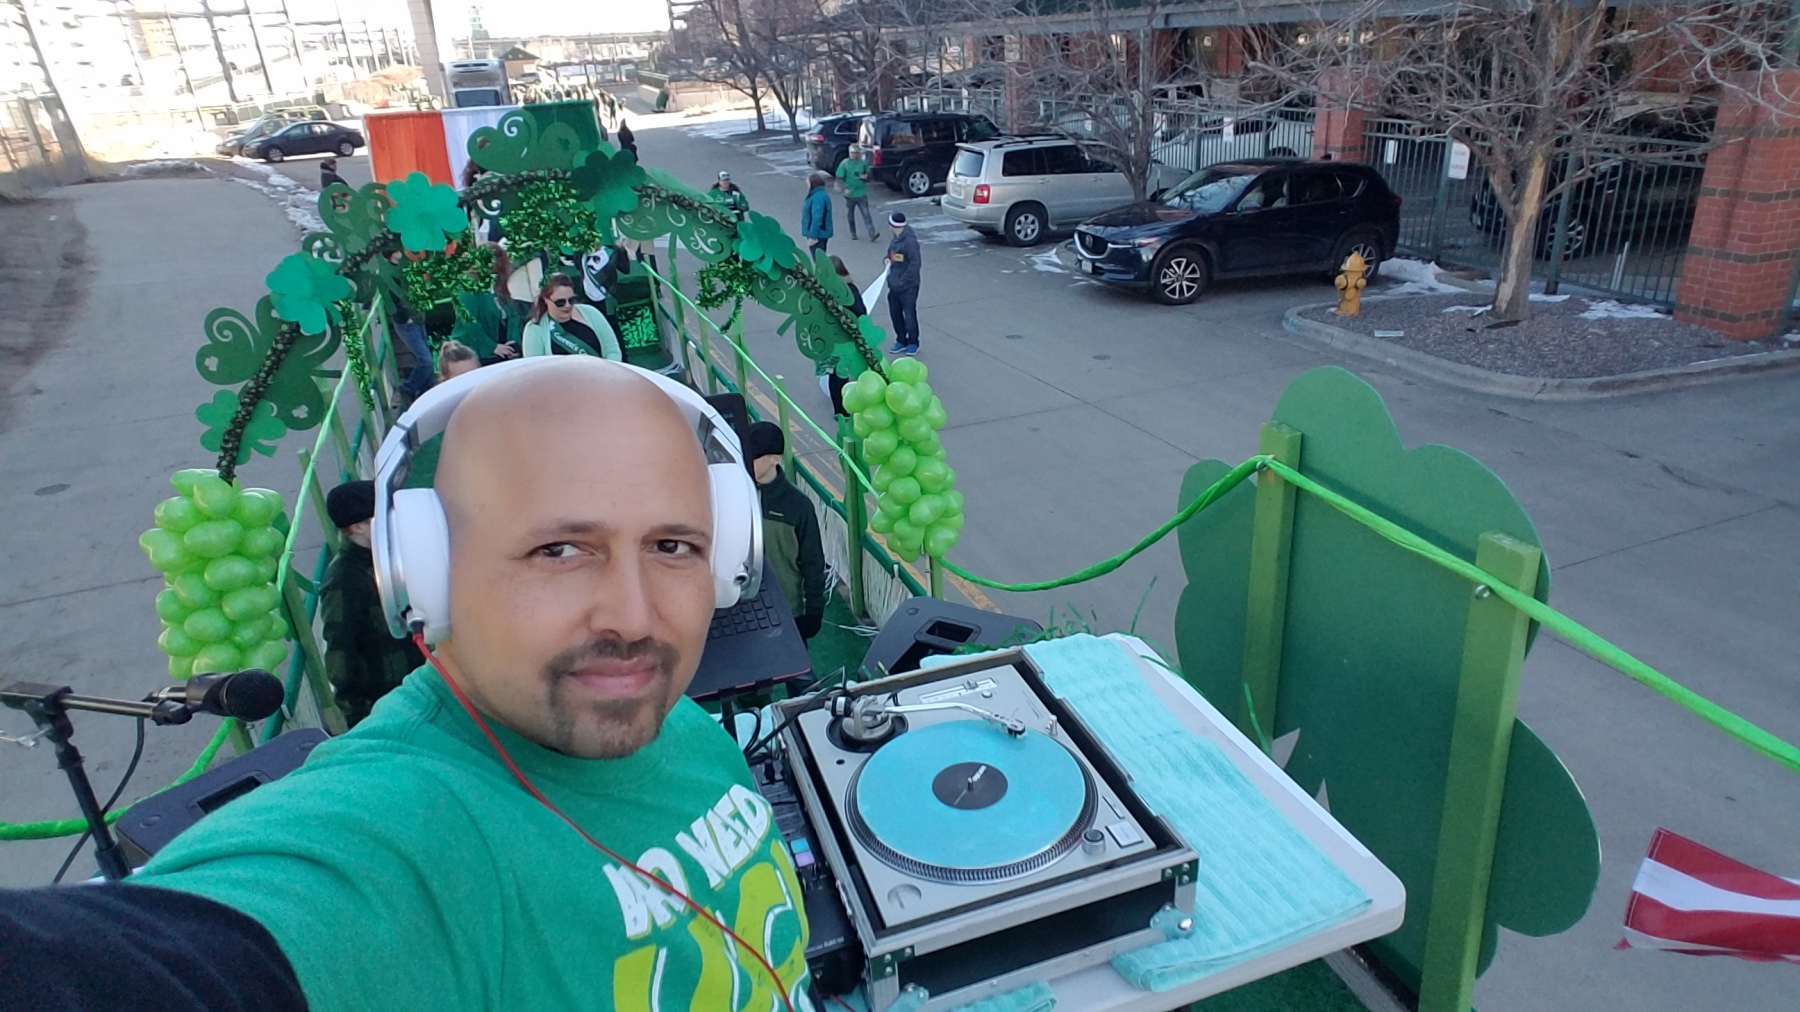 DJ Emir of Denver's Best DJs Official DJ Denver St. Patrick's Day Parade on Technics 1200 Turntables with Beats By Dre Pro Headphones